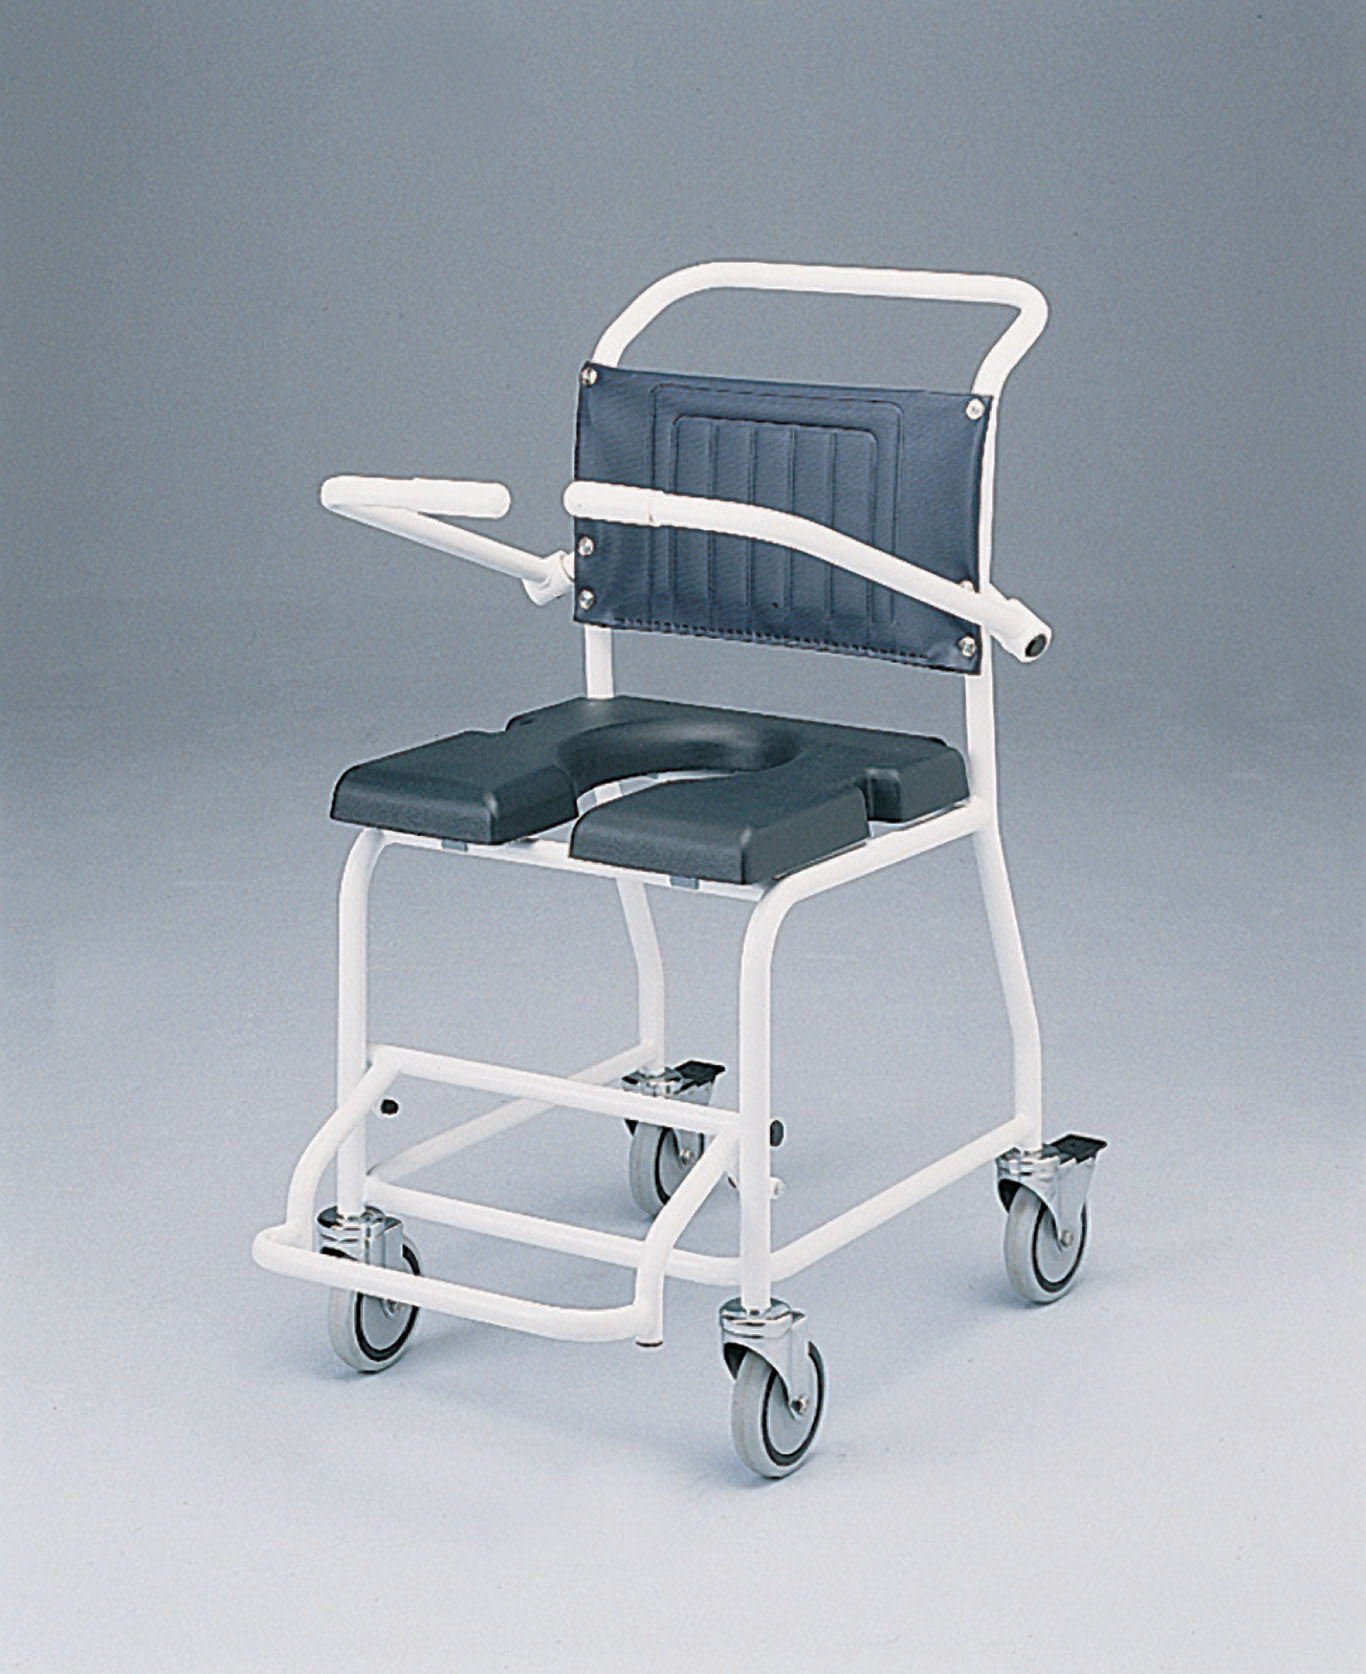 Gull Wing Attendant Commode And Shower Chair - Living made easy